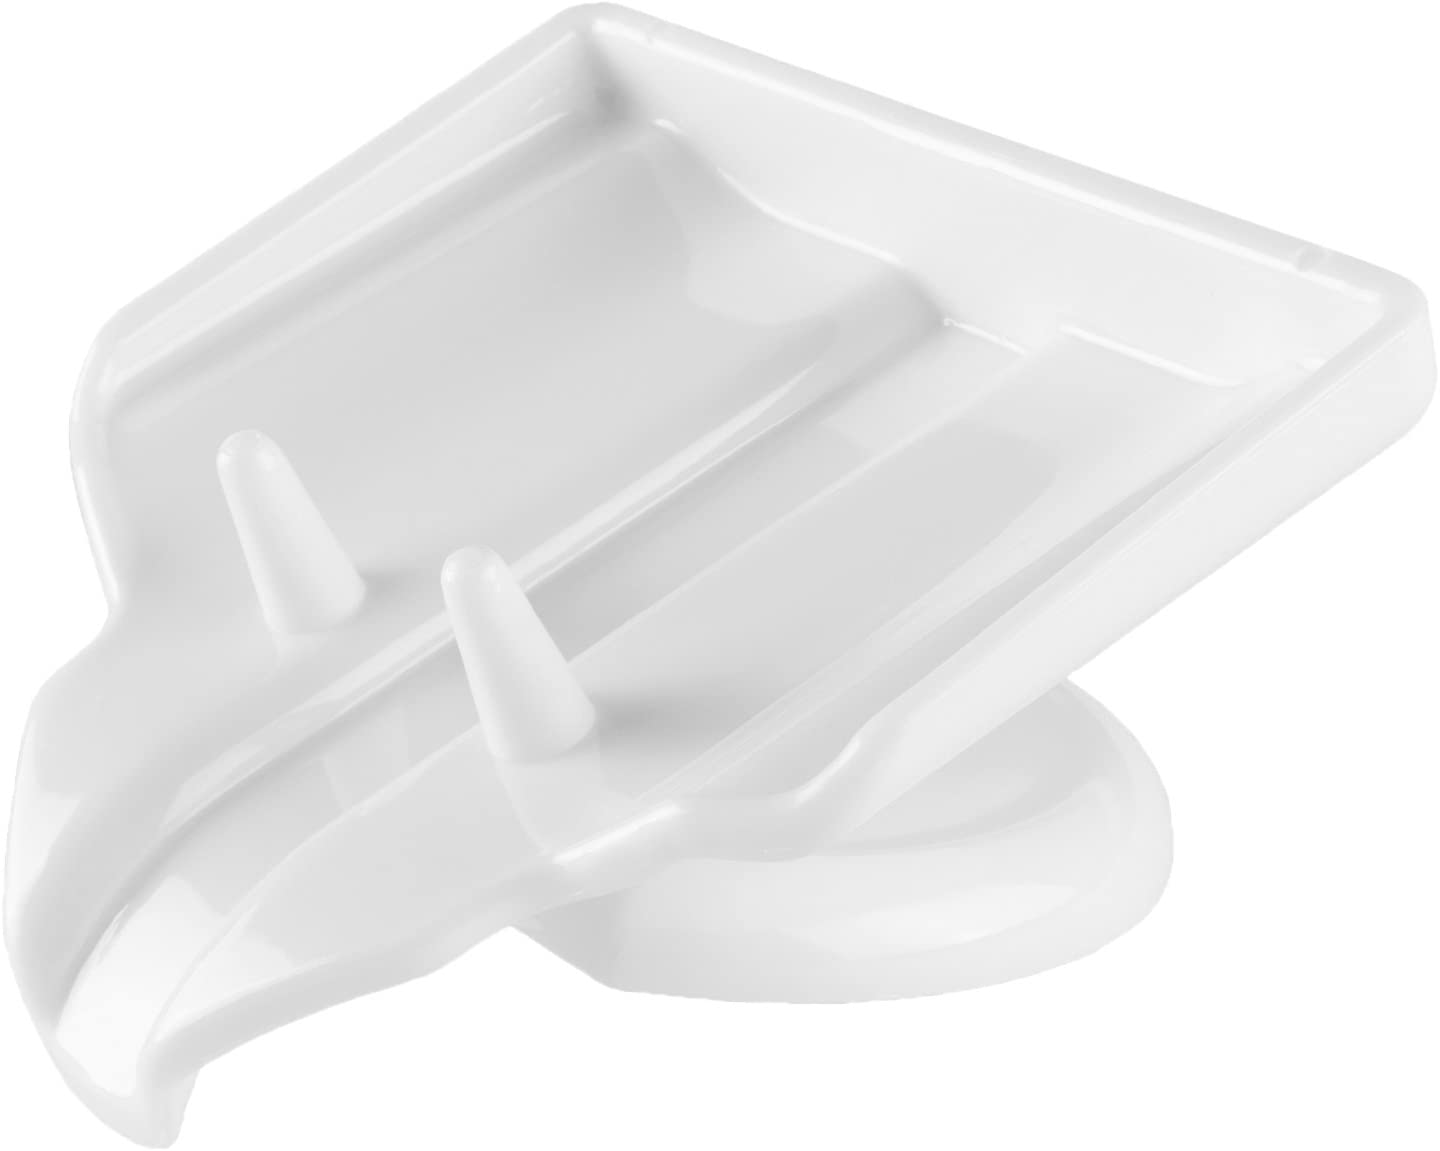 Soap shipfree Saver Waterfall Dish Drain Holder by Ho Everyday overseas